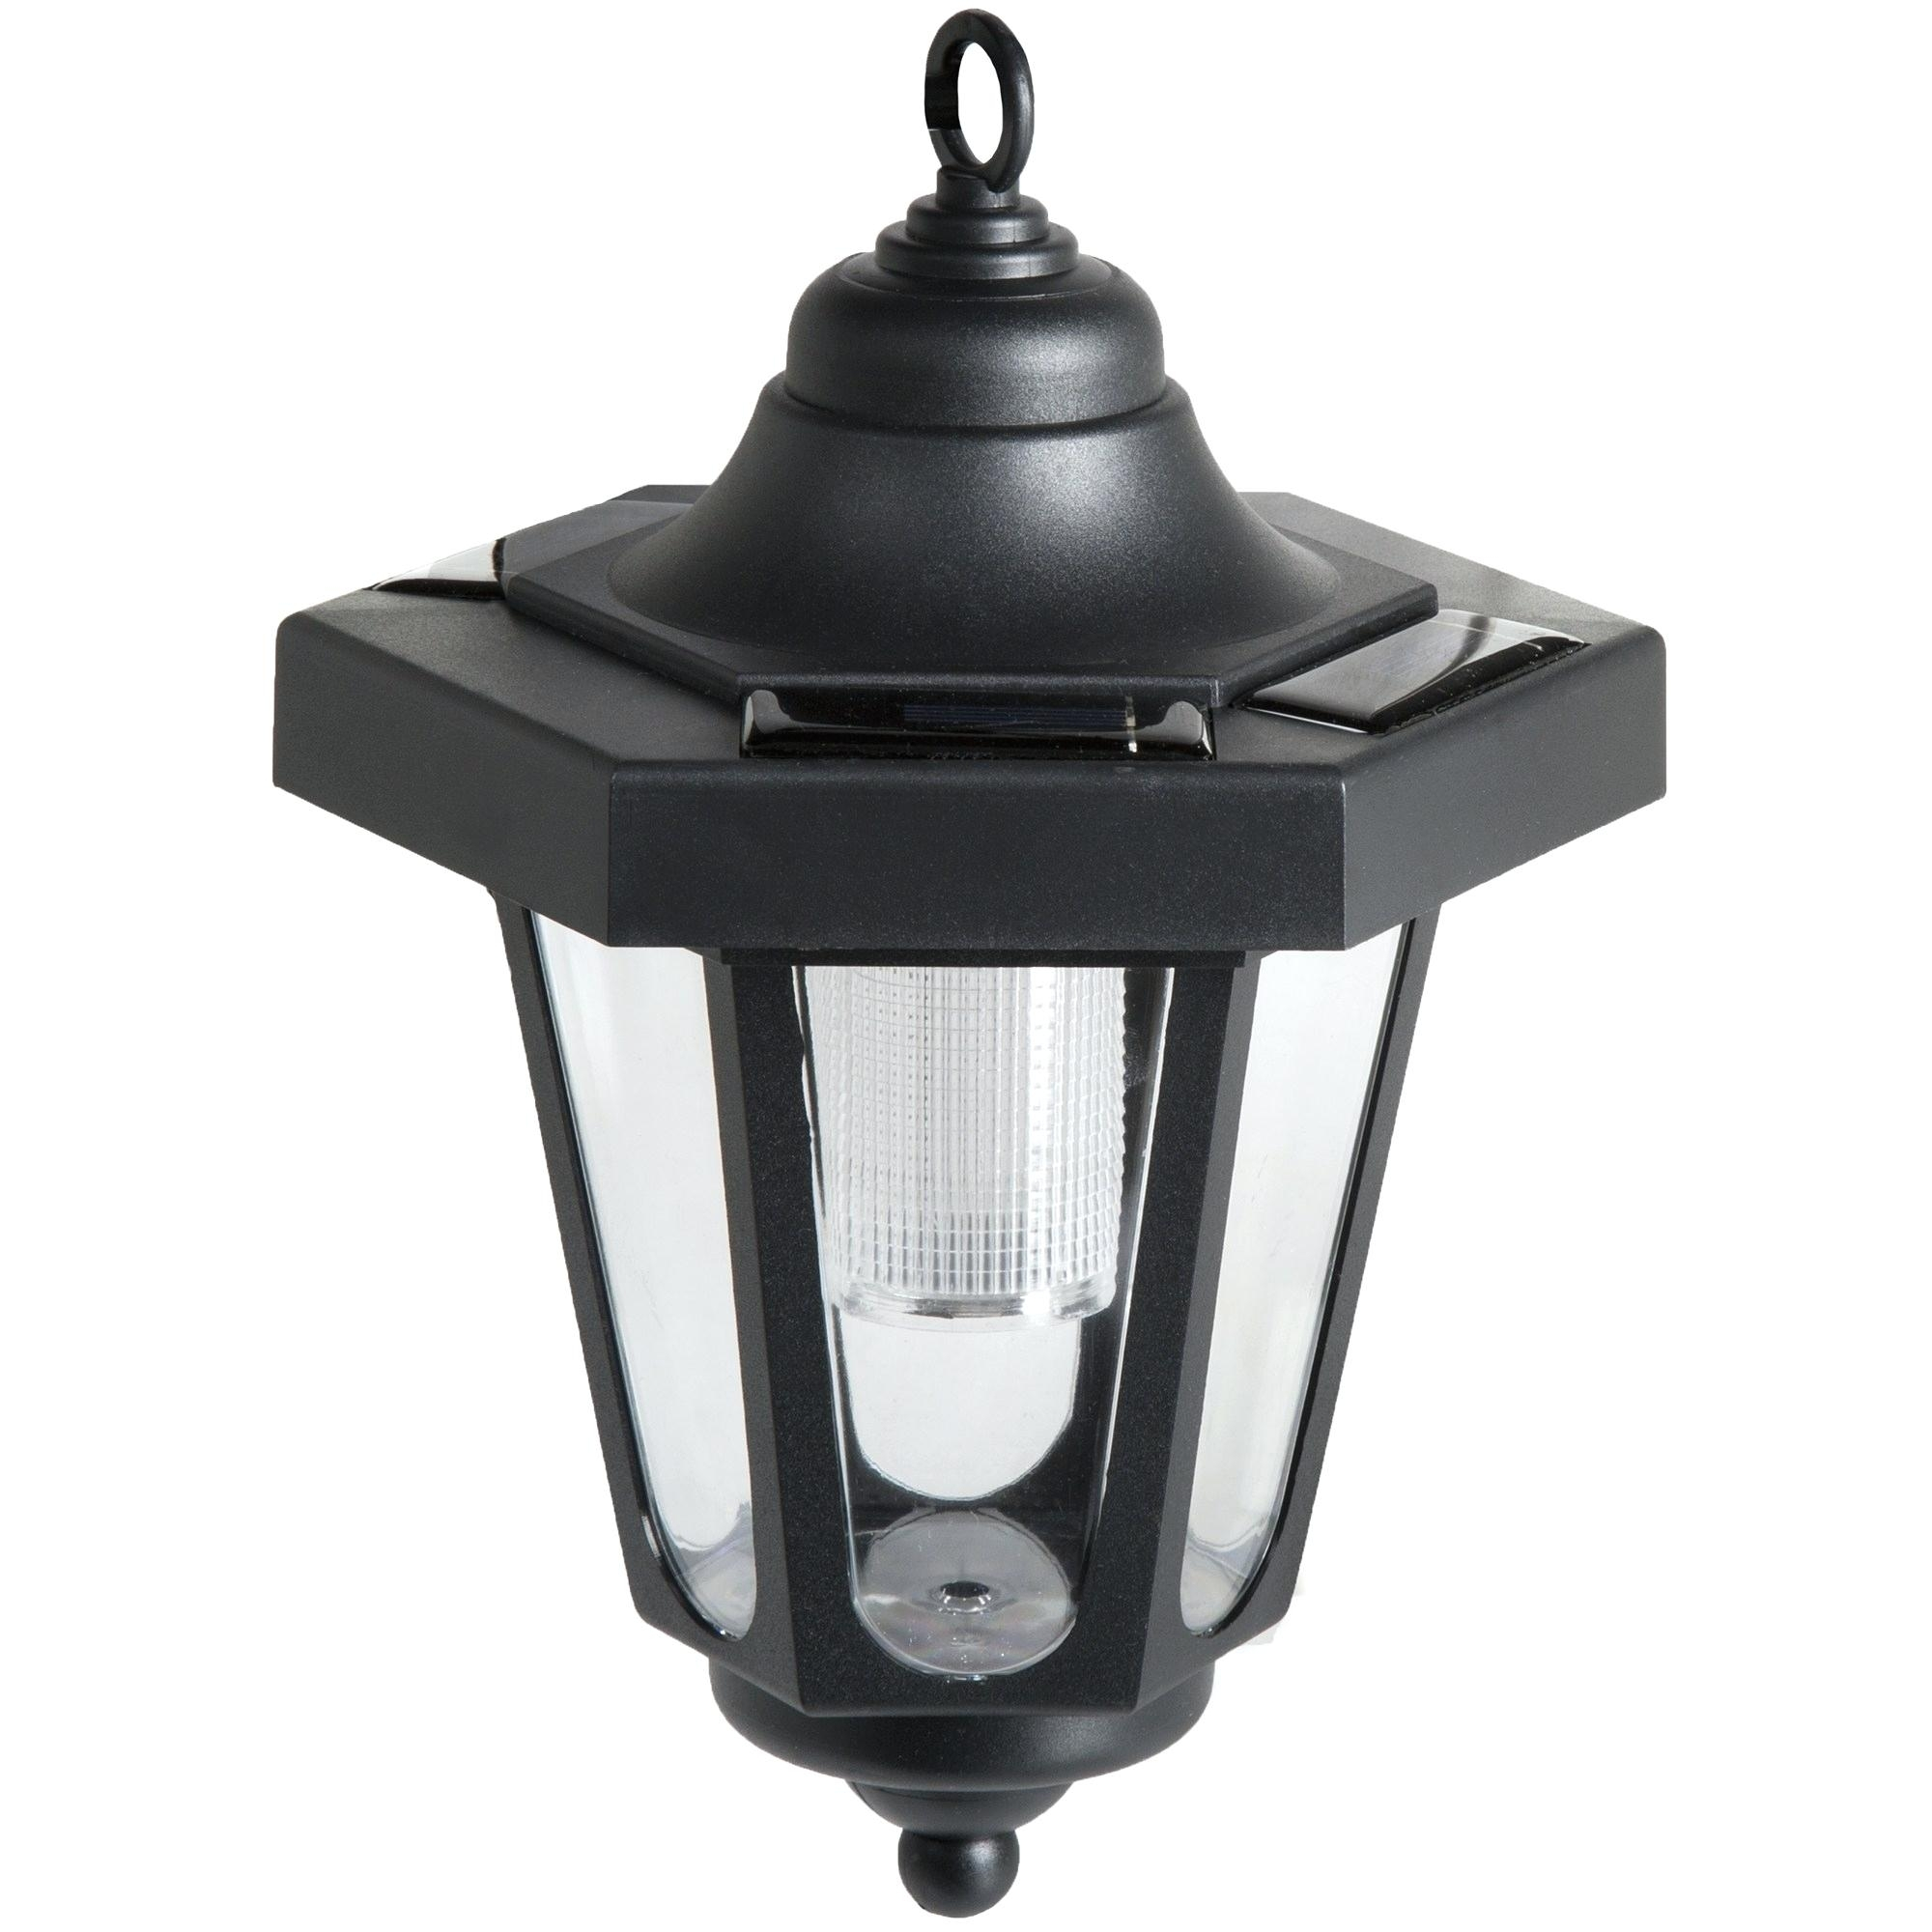 Solar Hanging Lanterns Australia Canada Amazon – Firstinresults Intended For Outdoor Hanging Lanterns At Amazon (View 14 of 15)